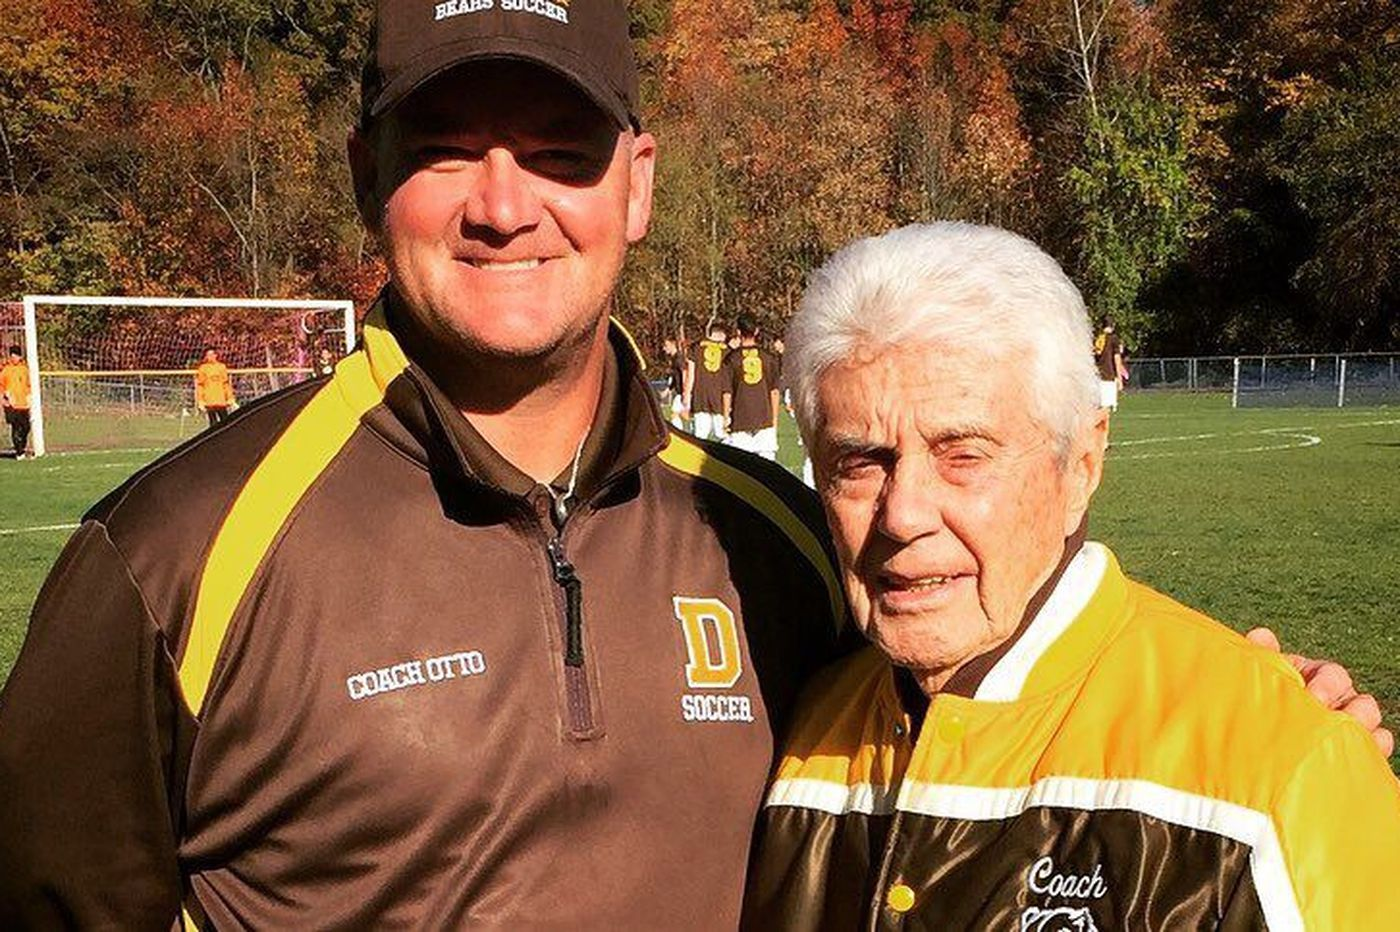 Soccer legend John Hughes dies; played for Temple and coached in Philly, South Jersey